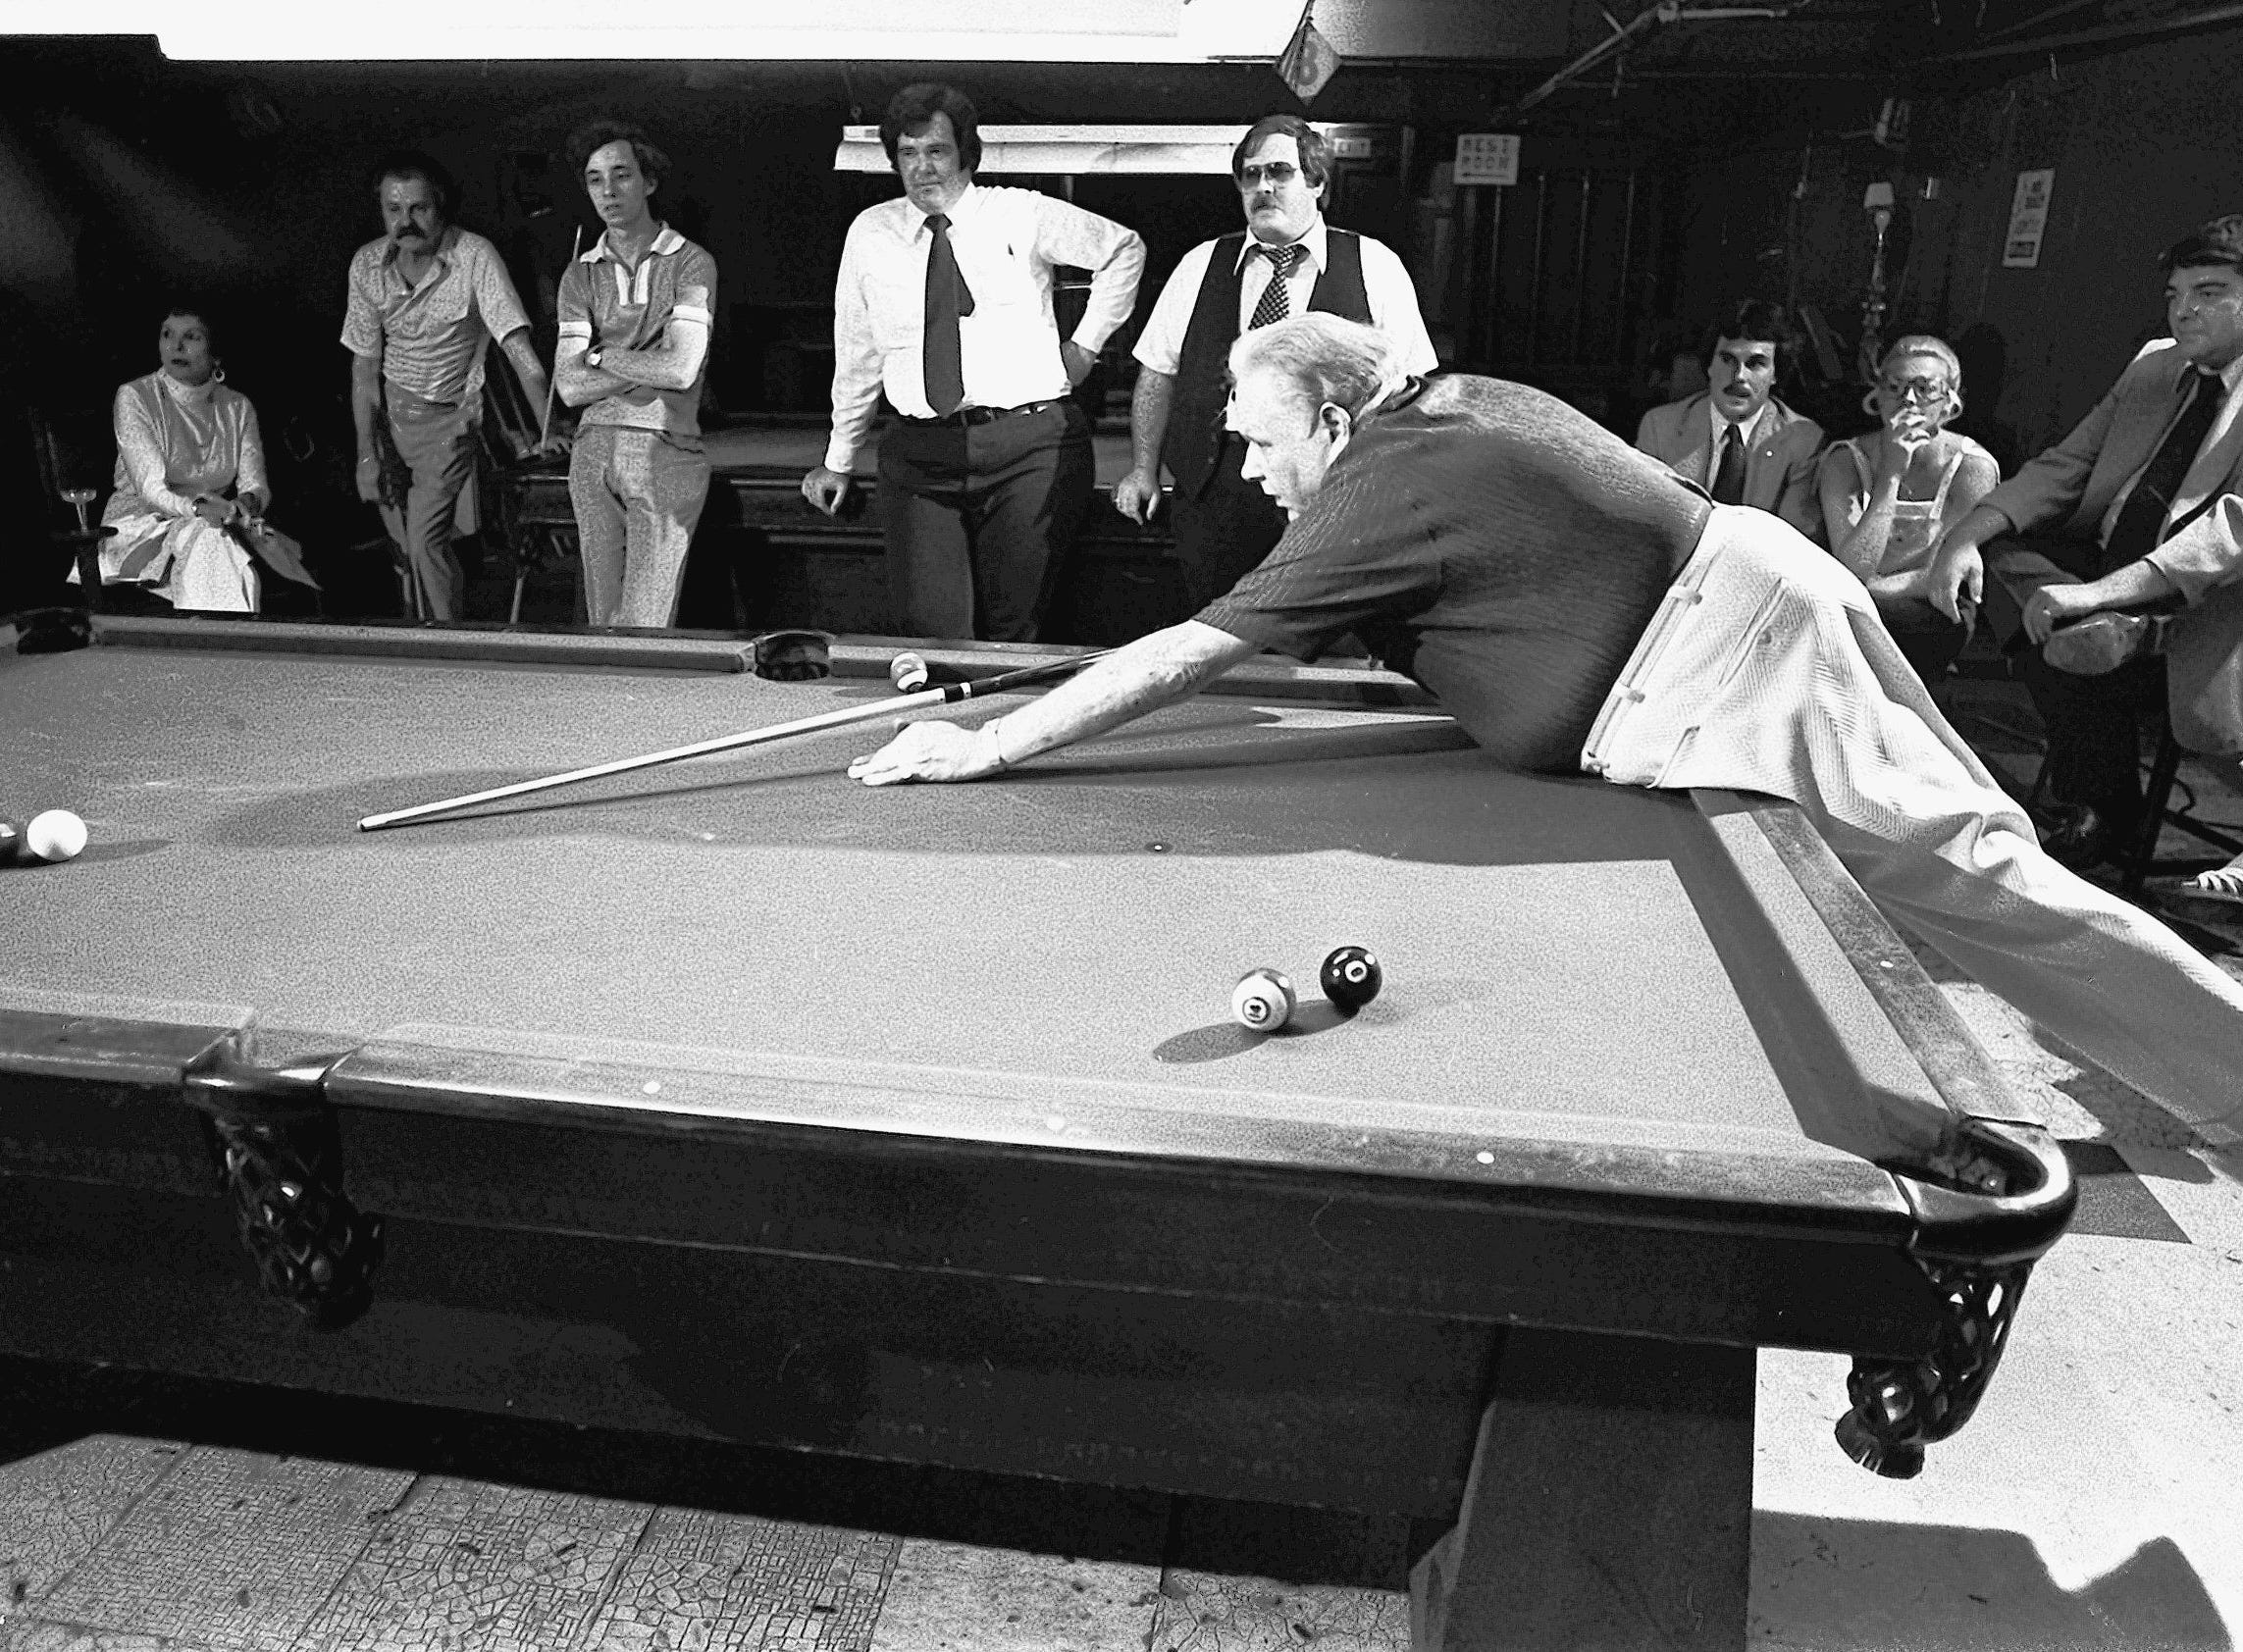 There is little about Minnesota Fats that is small.  The pool shark from Dowell, IL does everything in a big way.  He tells tall tales, wild jokes and long stories about himself.  He worked his magic in a demonstration at Peoples Pool Hall at 8 North Second Street on 22 Aug 1978.